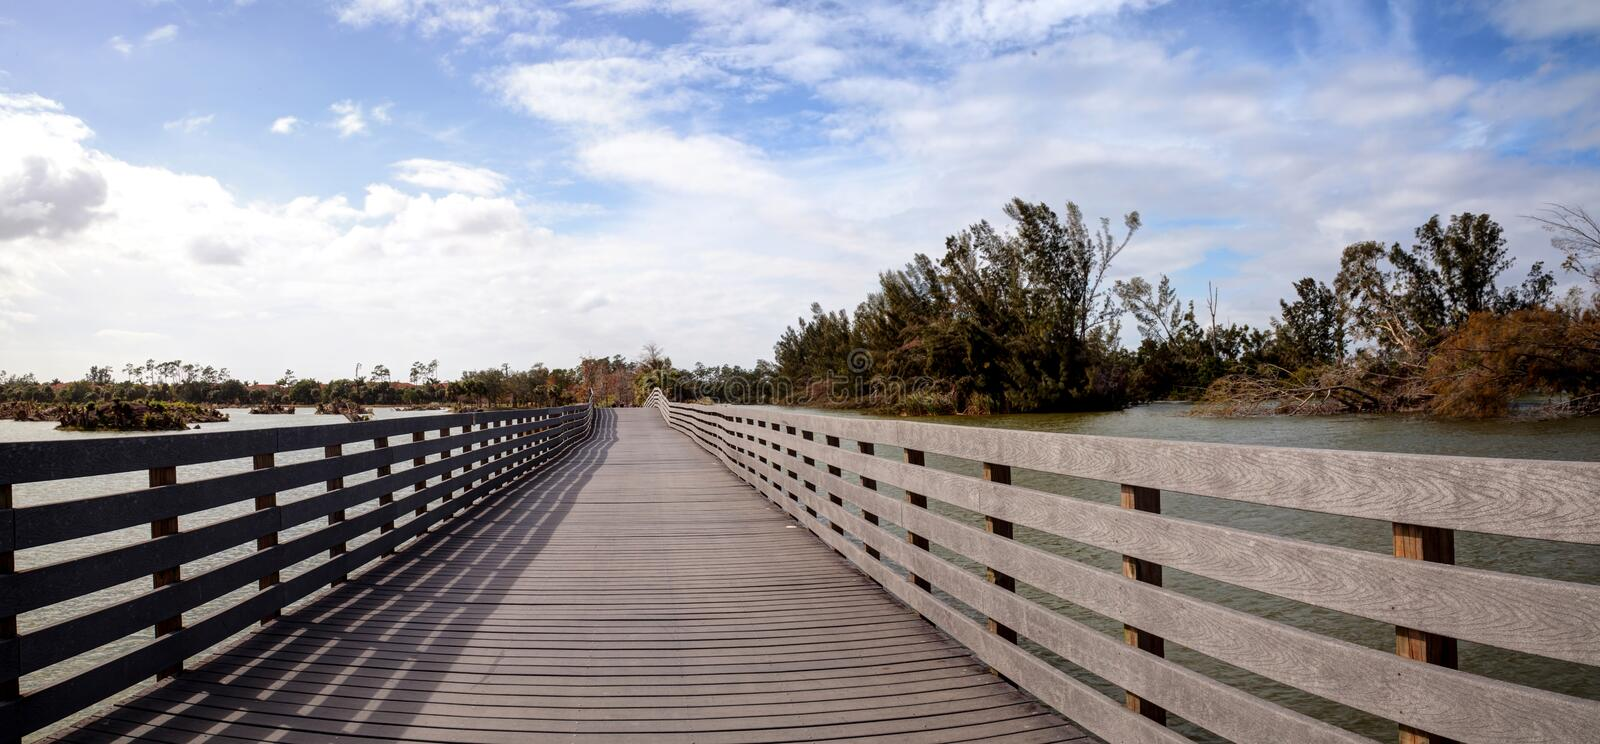 Boardwalk goes through the swamp at Lakes Park and shows Hurricane Irma damage stock photos